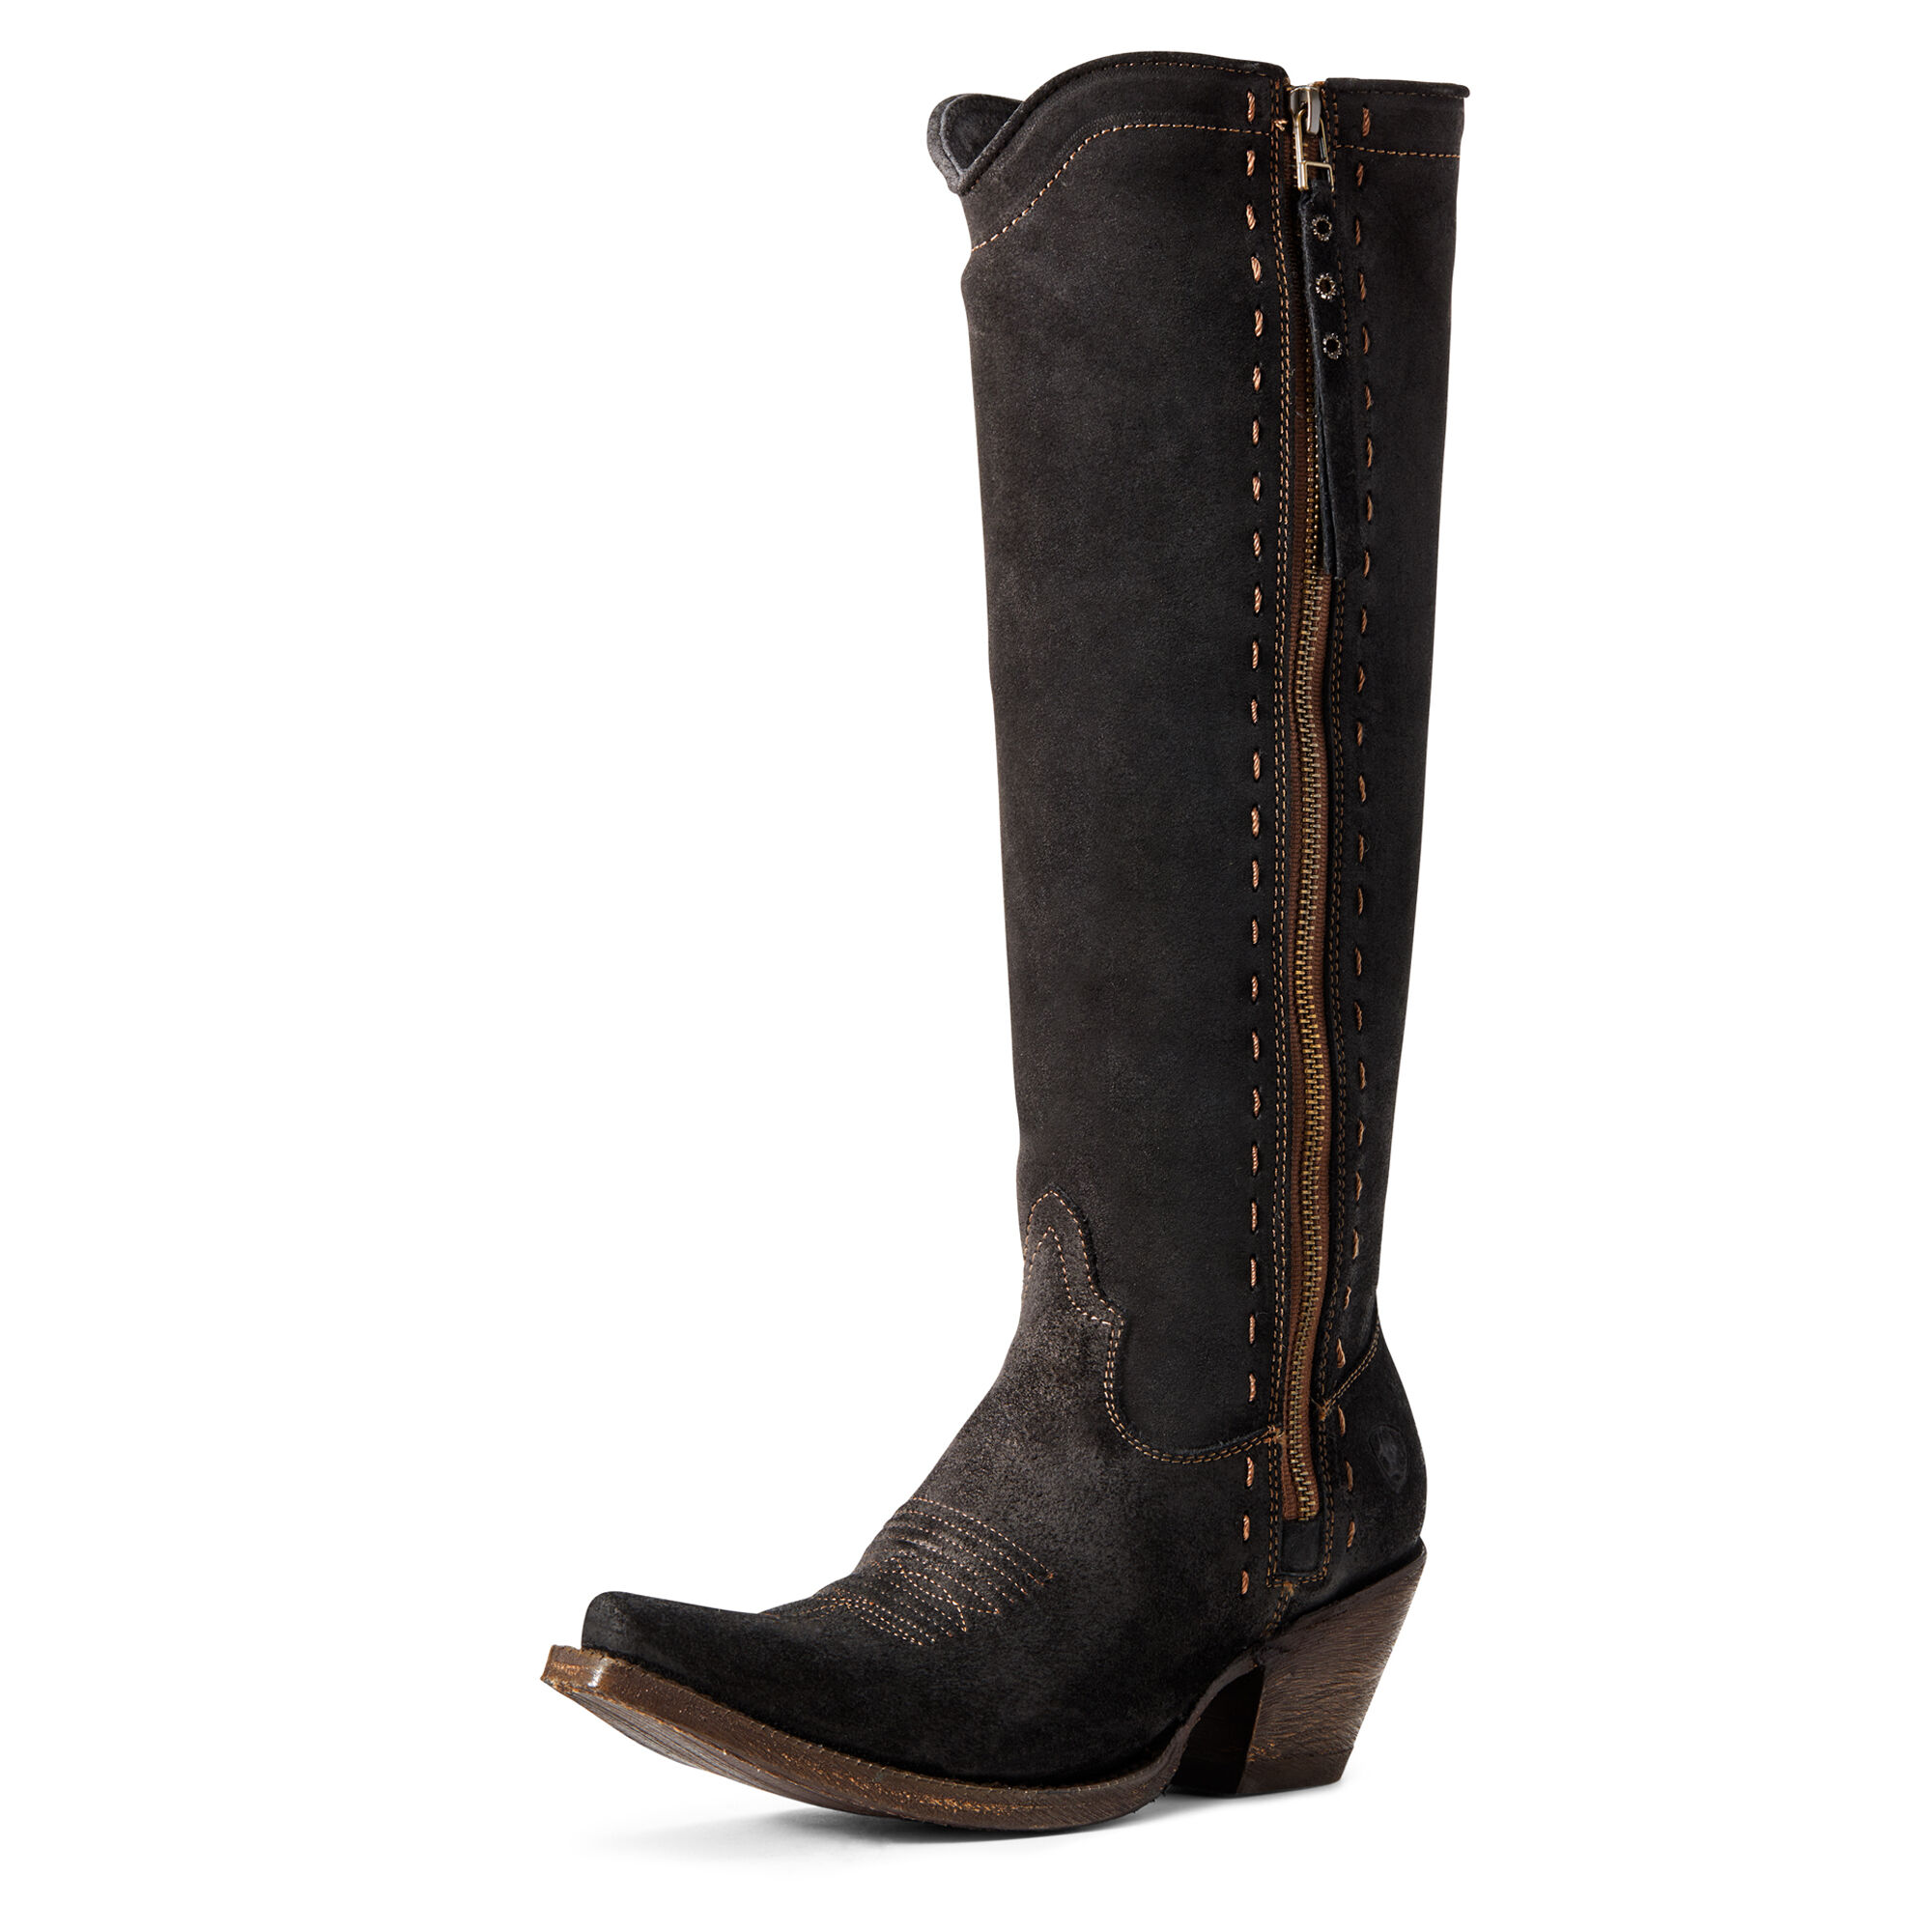 Women's Giselle Western Boots in Black Suede by Ariat